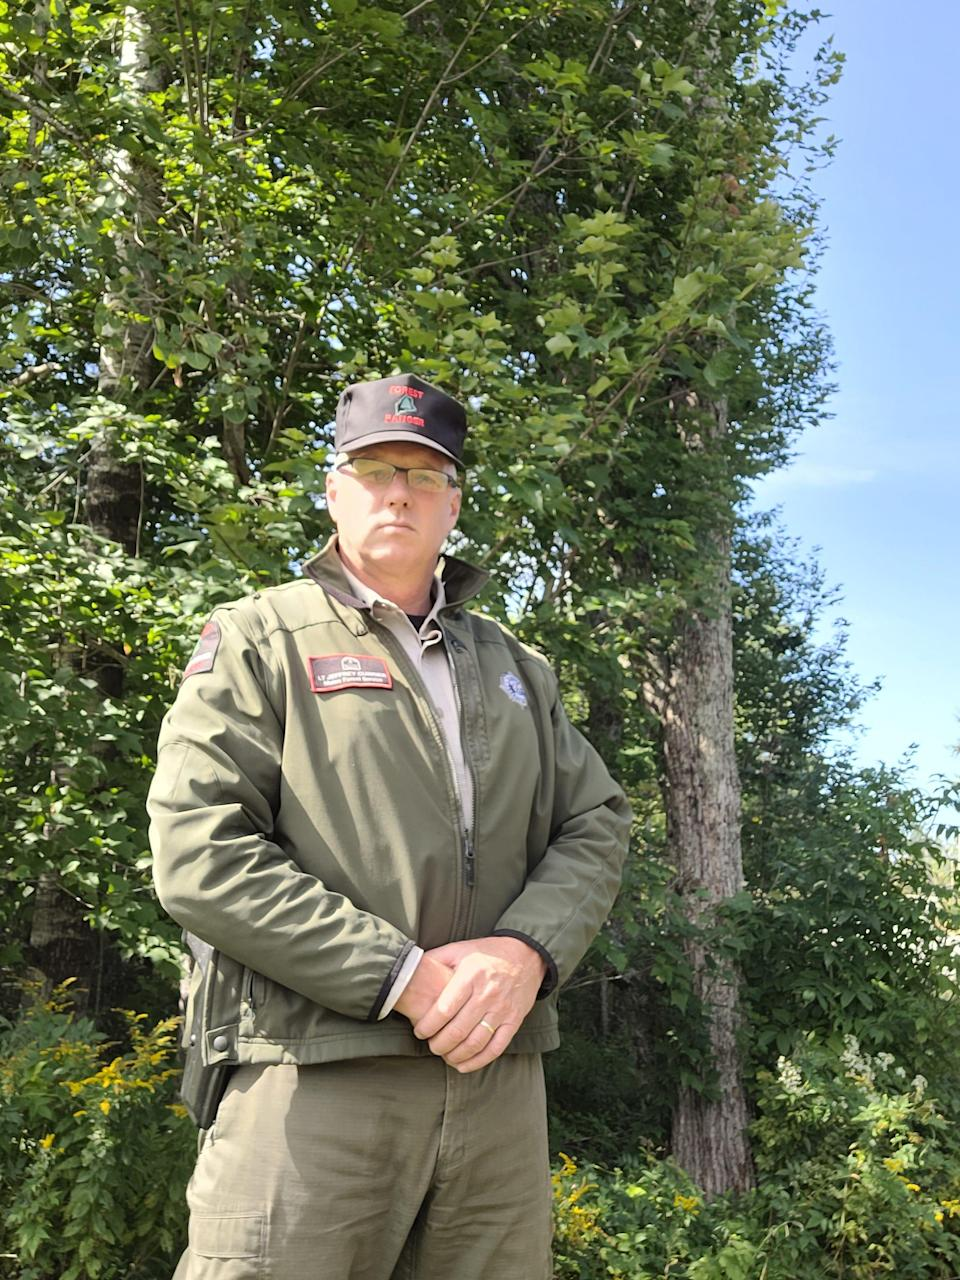 Jeff Currier is a regional forest ranger for the Maine Forest Service. He sees several conflating factors – like climate change and degradation of volunteer fire departments – as concerns for Maine's wildfire risk.